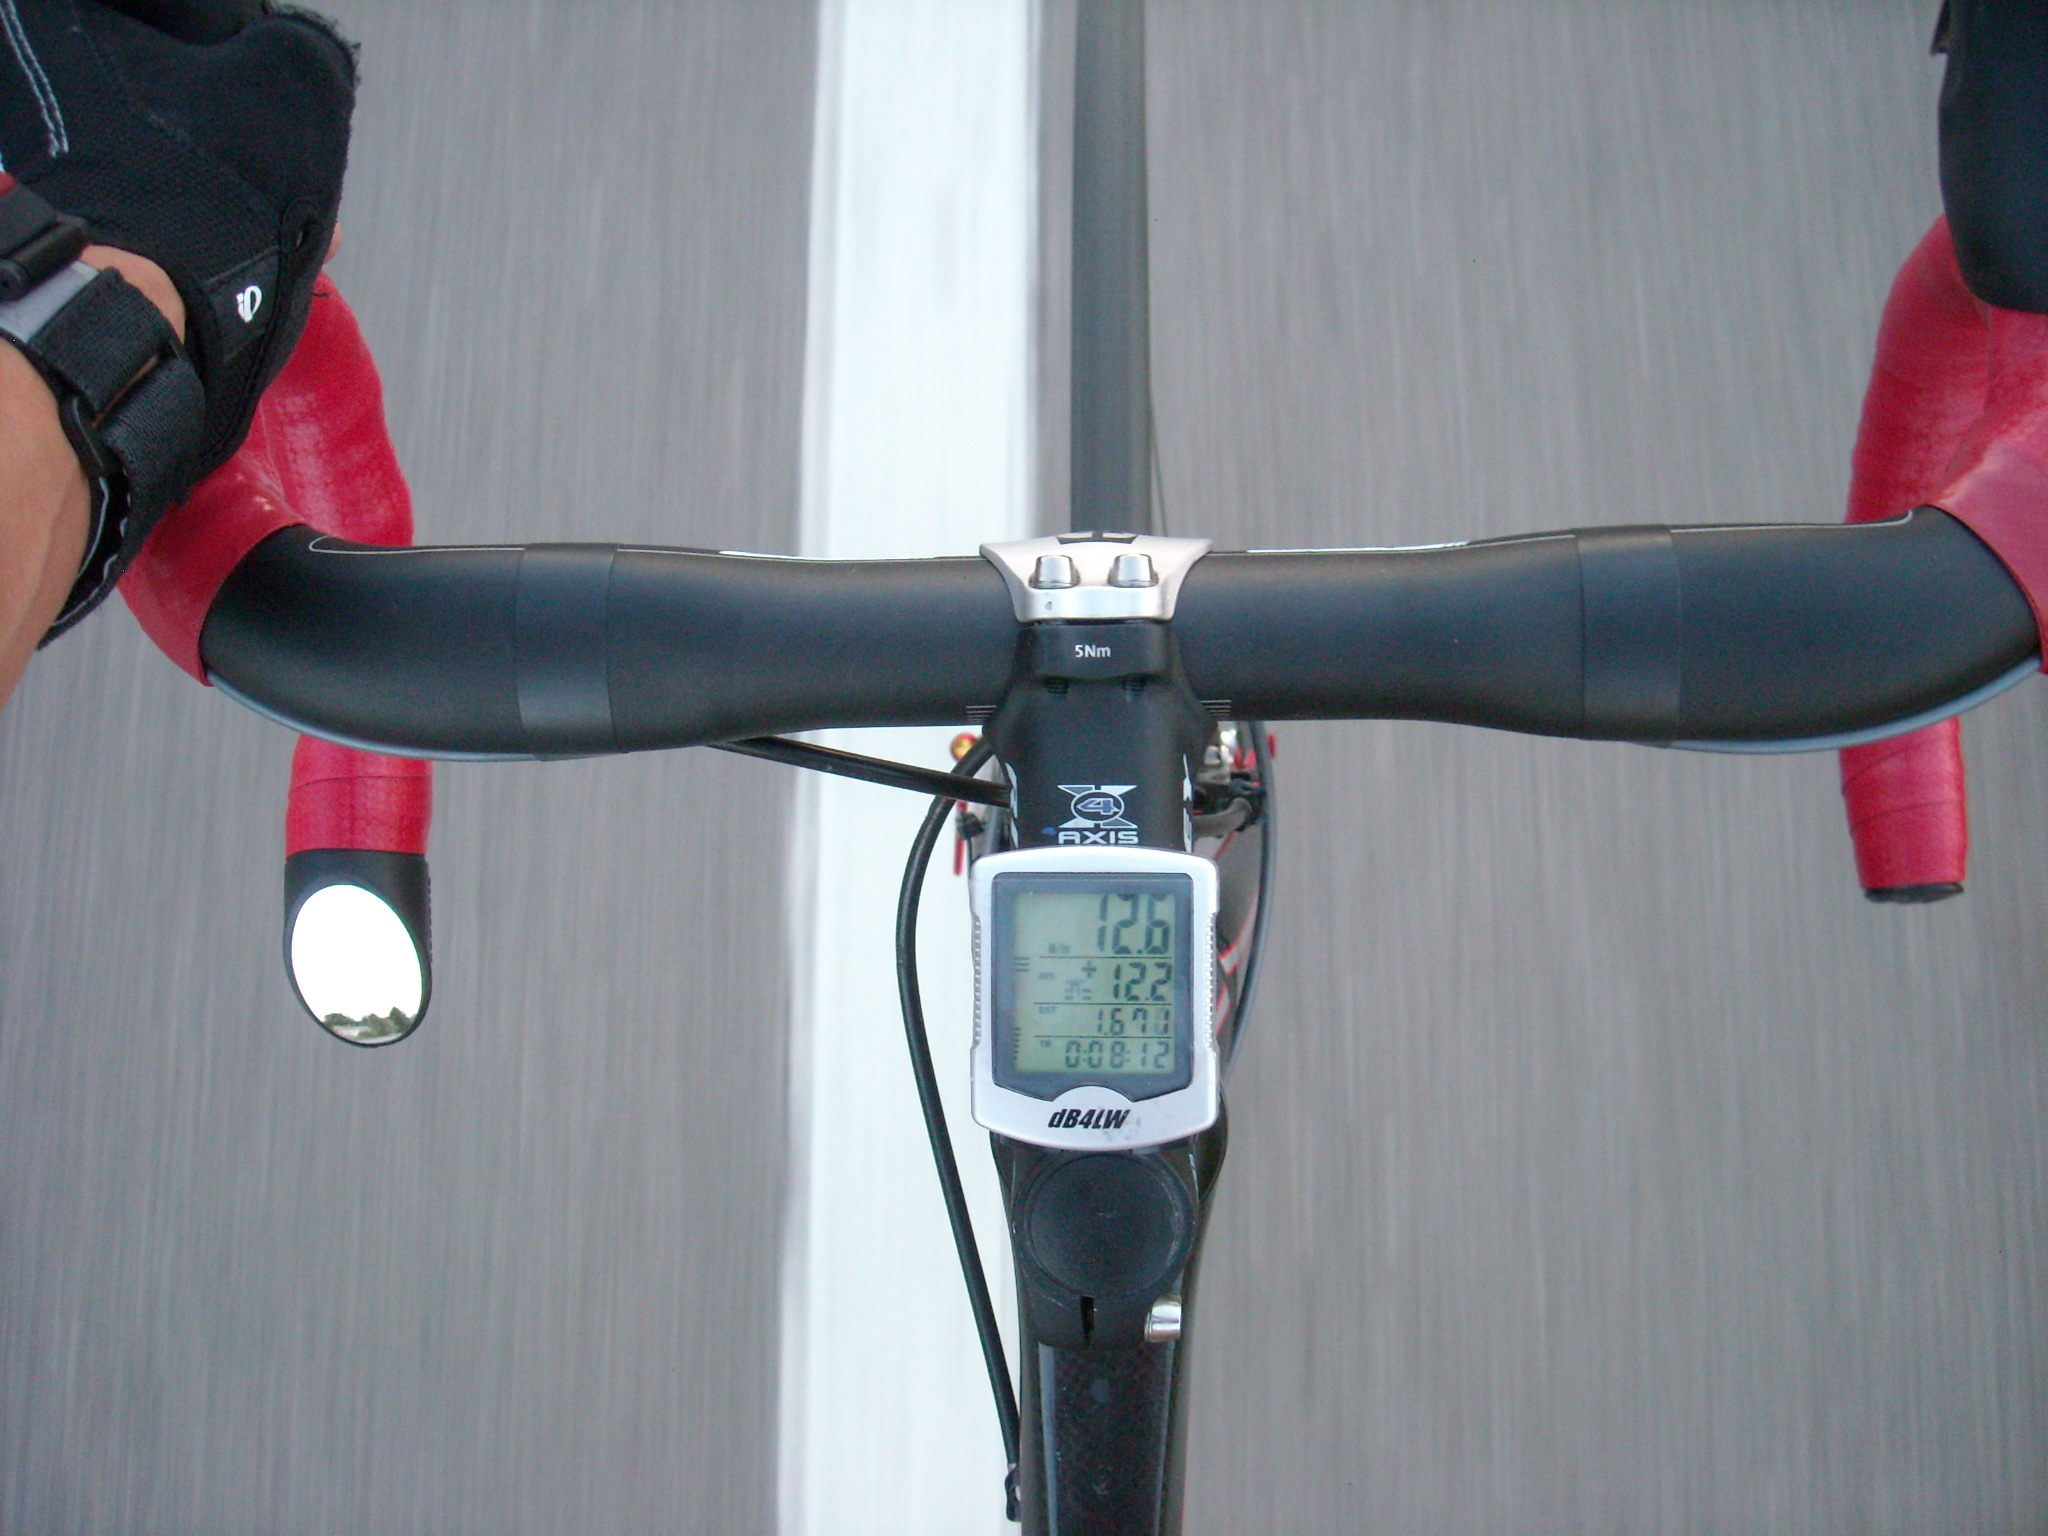 Italian Road Bike Mirror, top view